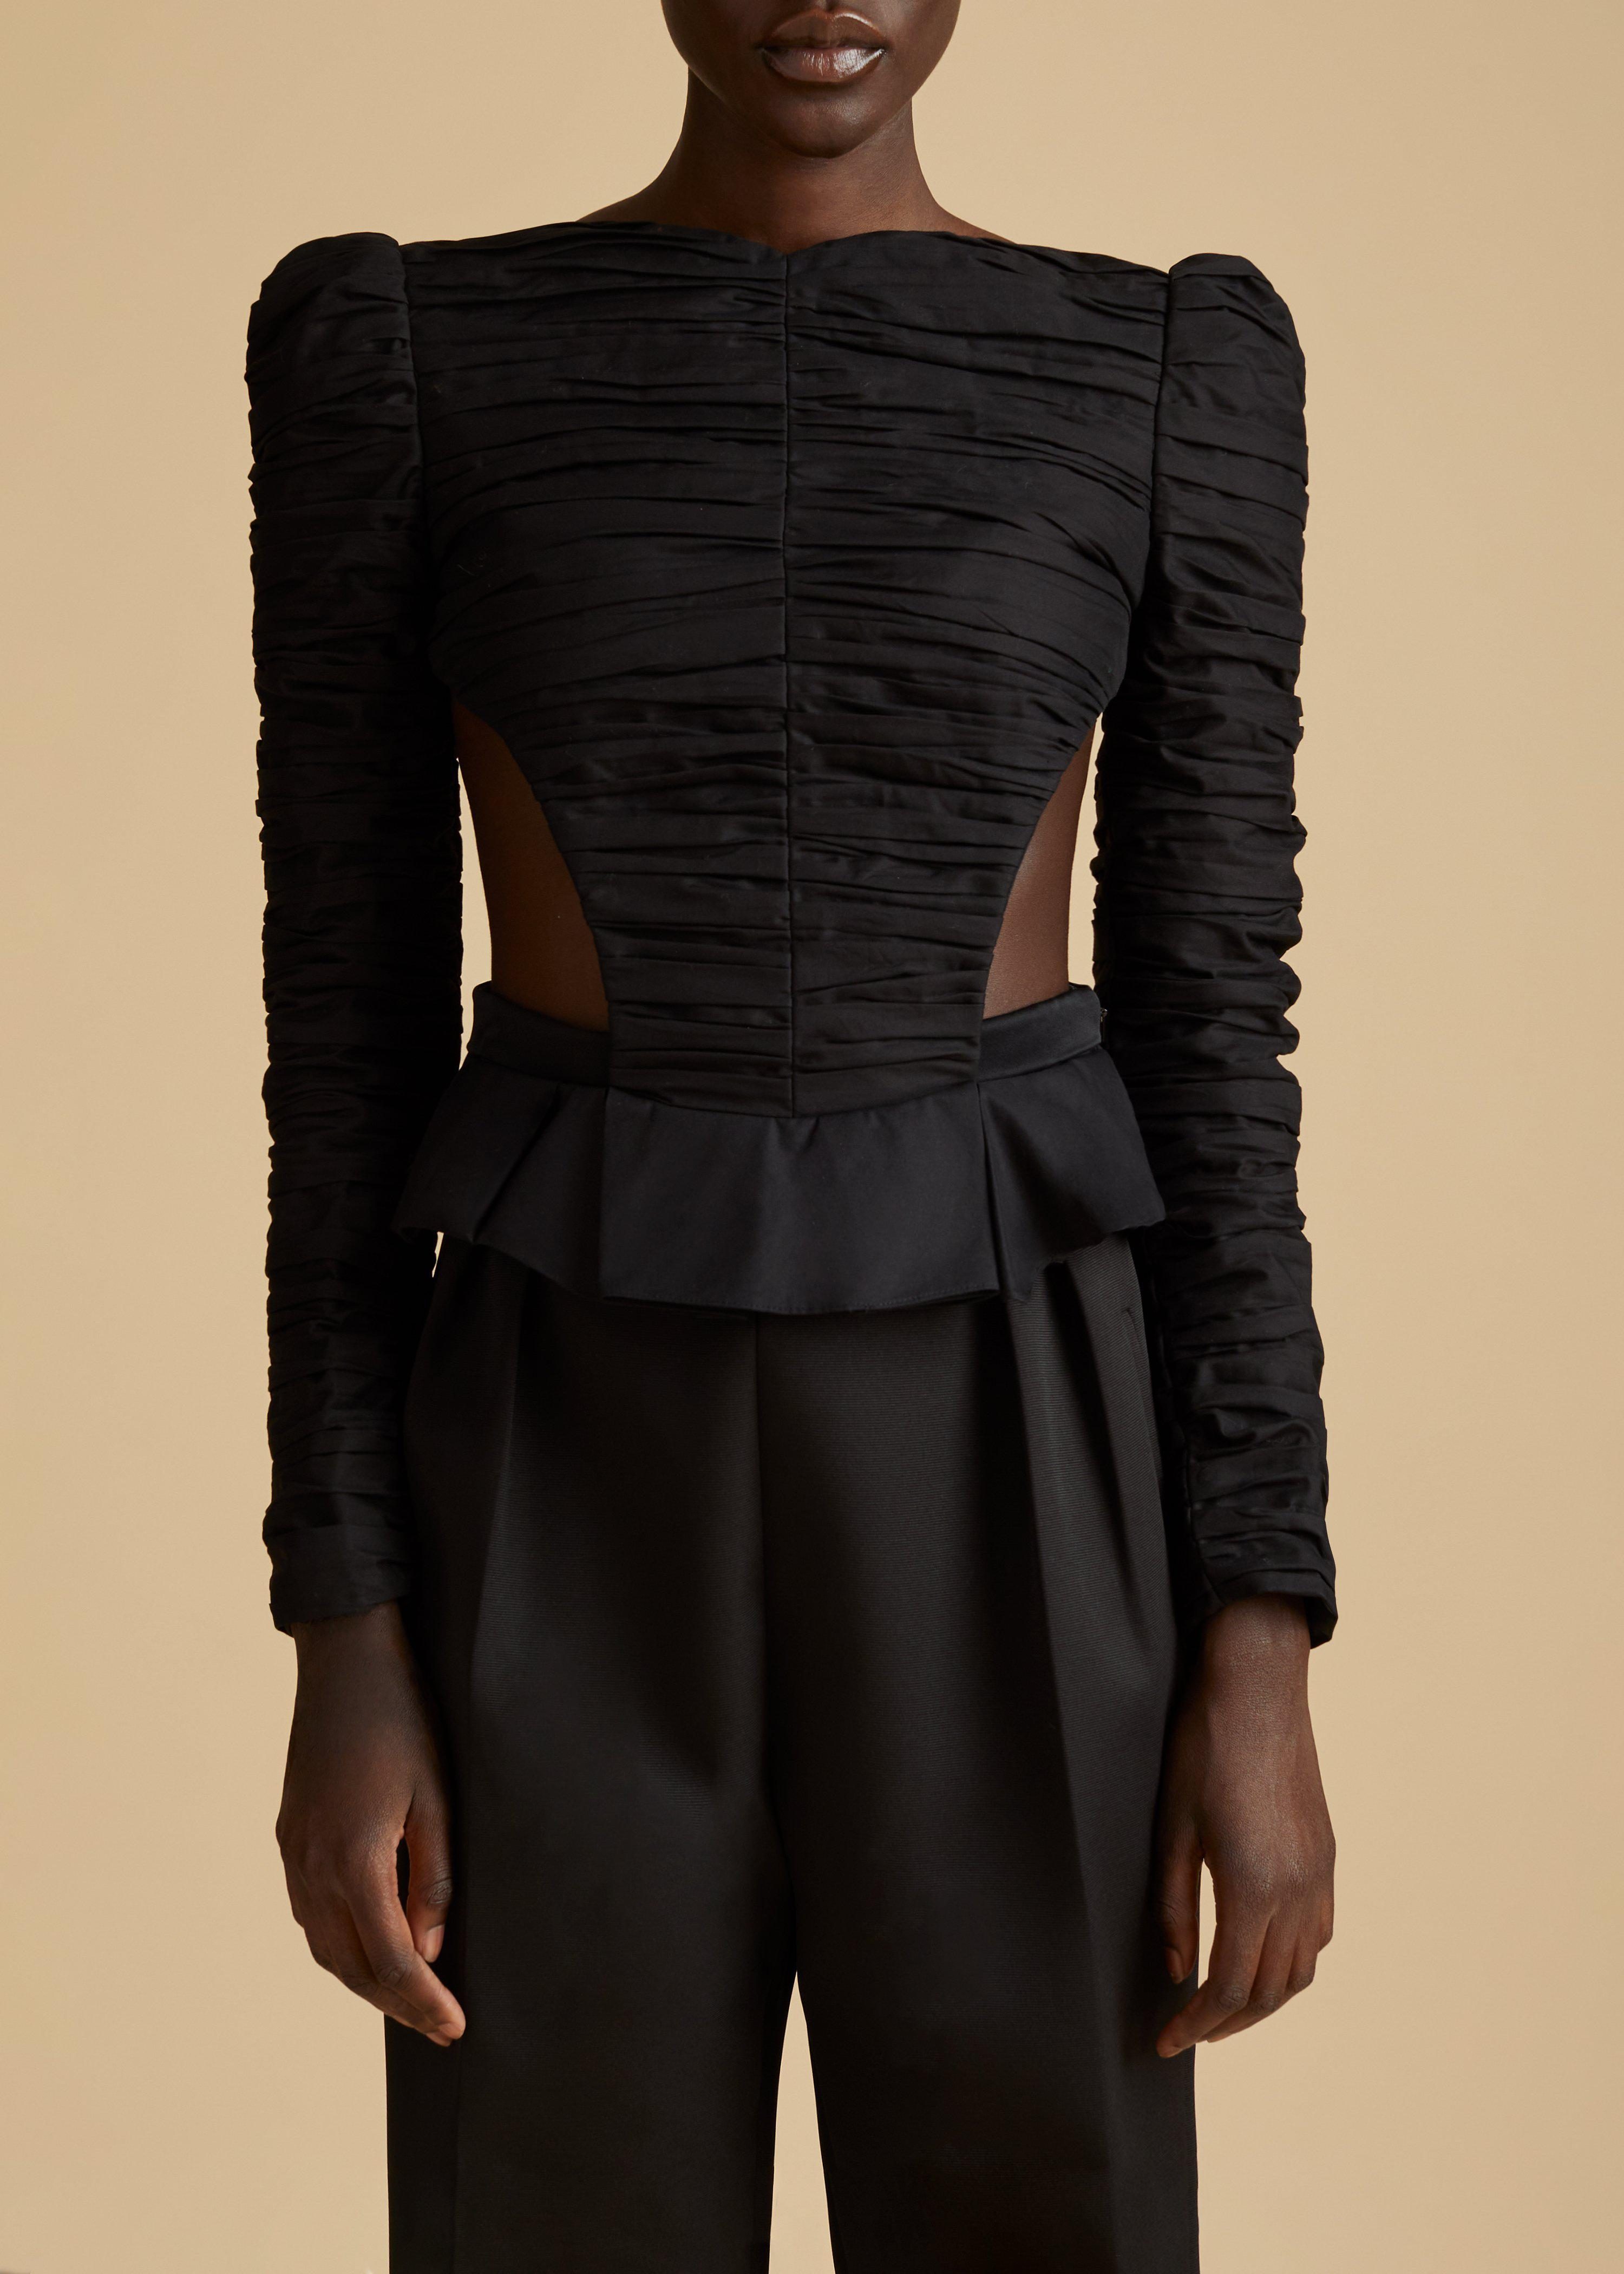 The Rosy Top in Black